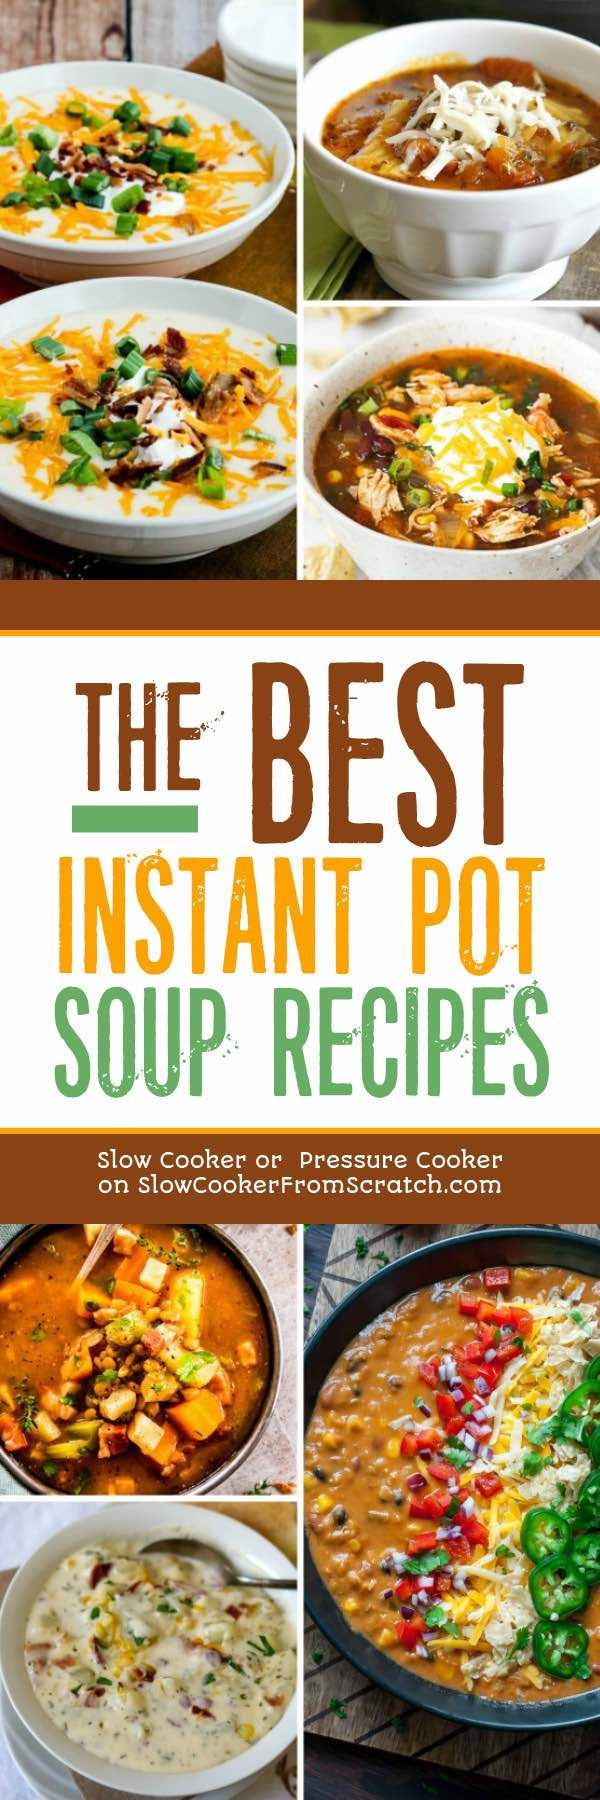 We're just heading into full-out soup season, and soup is so quick in the Instant Pot! To help you make tasty Instant Pot Soups all winter long, we've collected The BEST Instant Pot Soups; enjoy! [featured on Slow Cooker or Pressure Cooker at SlowCookerFromScratch.com] #InstantPotSoup #PressureCookerSoup #TheBestInstantPotSoup #InstantPotSoupRecipes